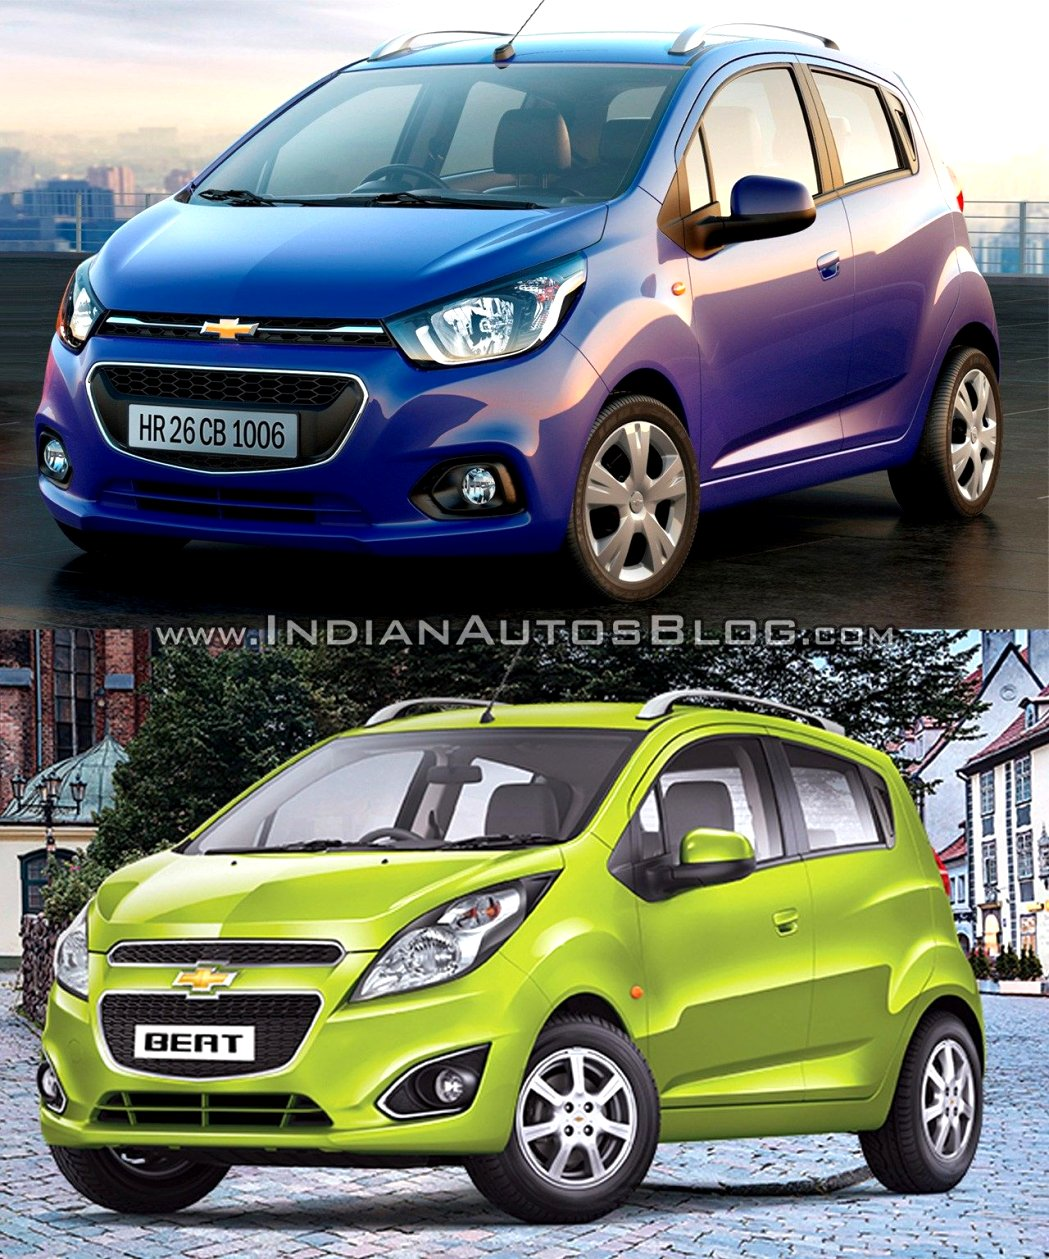 chevrolet beat 2020 Ratings